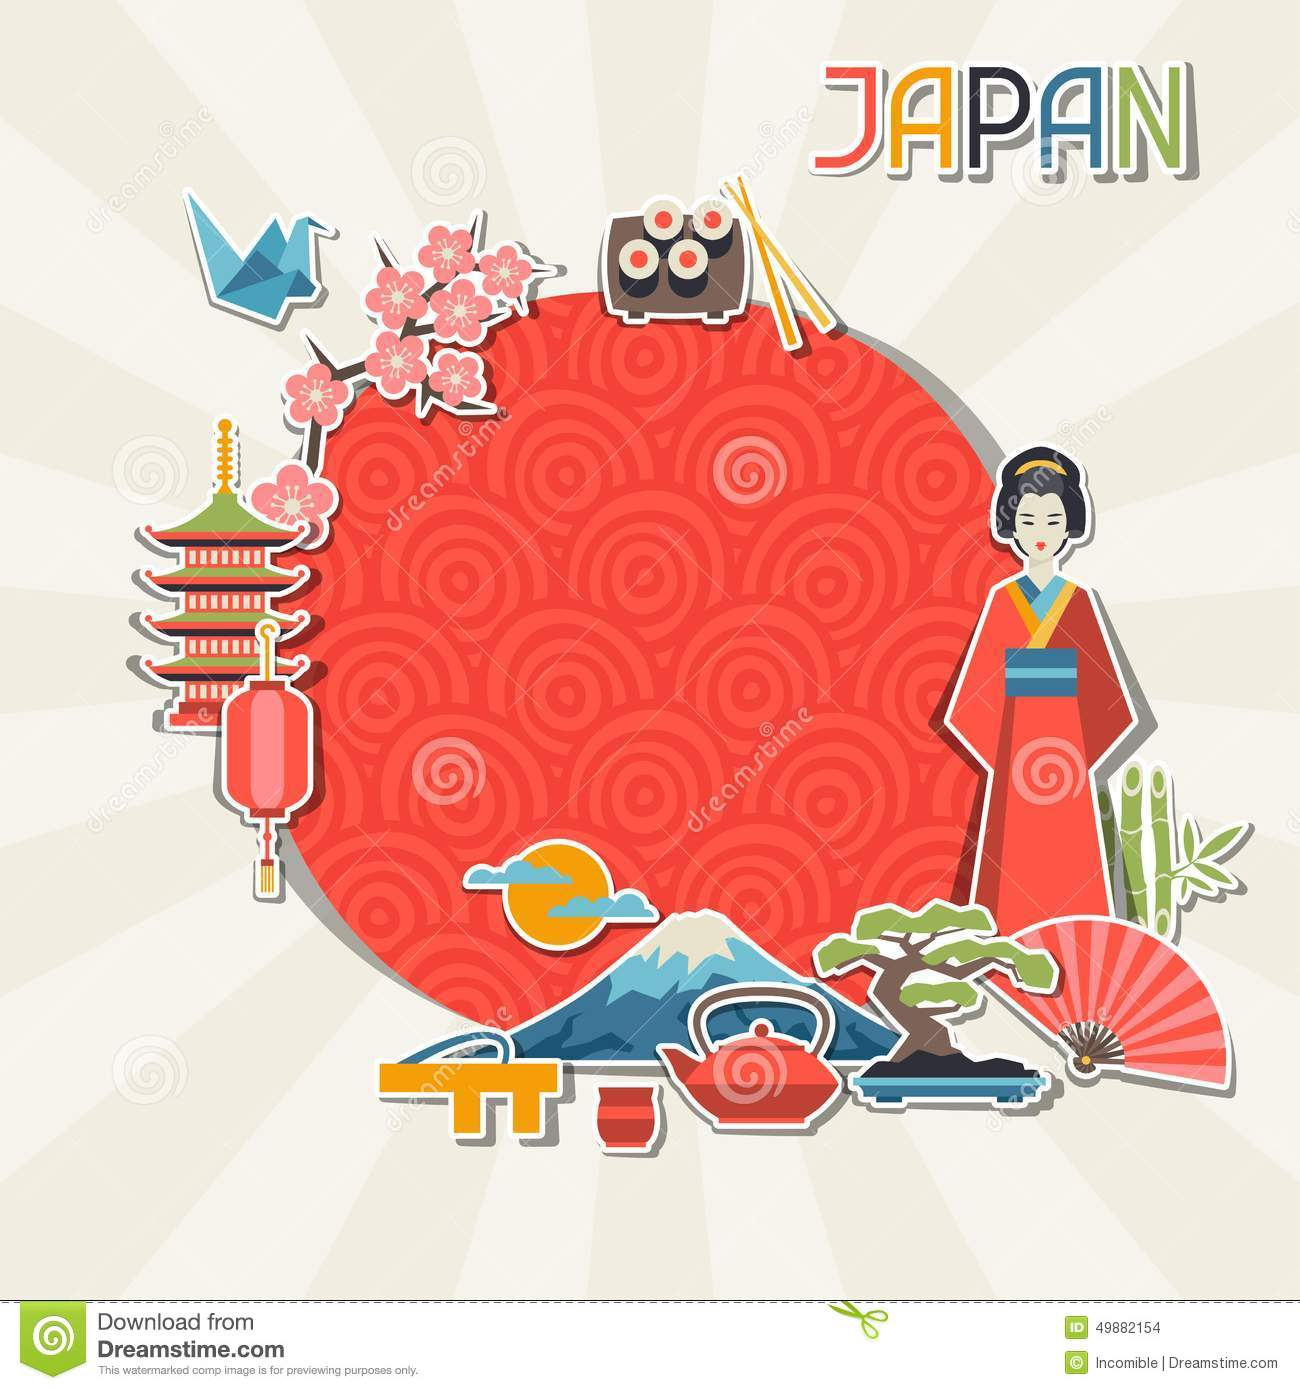 warlords of japan background essay 9 A quite entertaining game, warlords of japan, played at eagle school teaches tactics and encourages analysis of the japanese lifestyle this website gives tips and tricks on just that game.